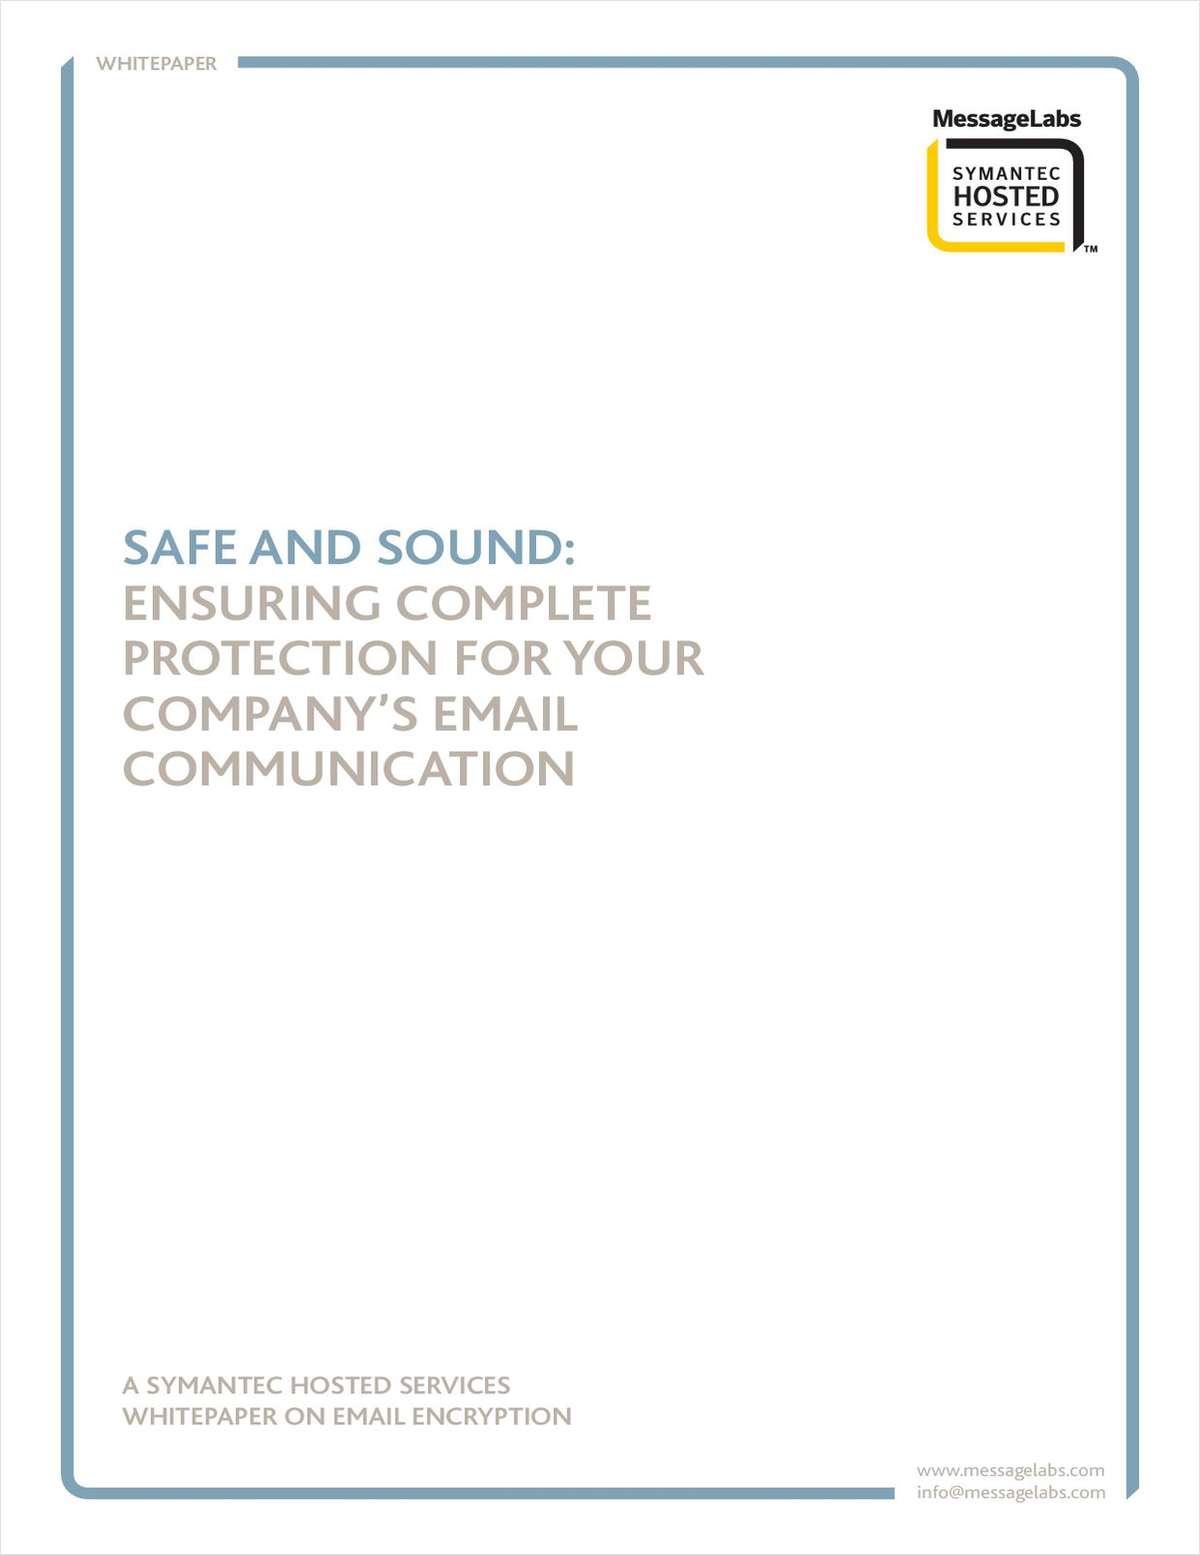 SAFE AND SOUND: Ensuring Complete Protection for your Company's Email Communication